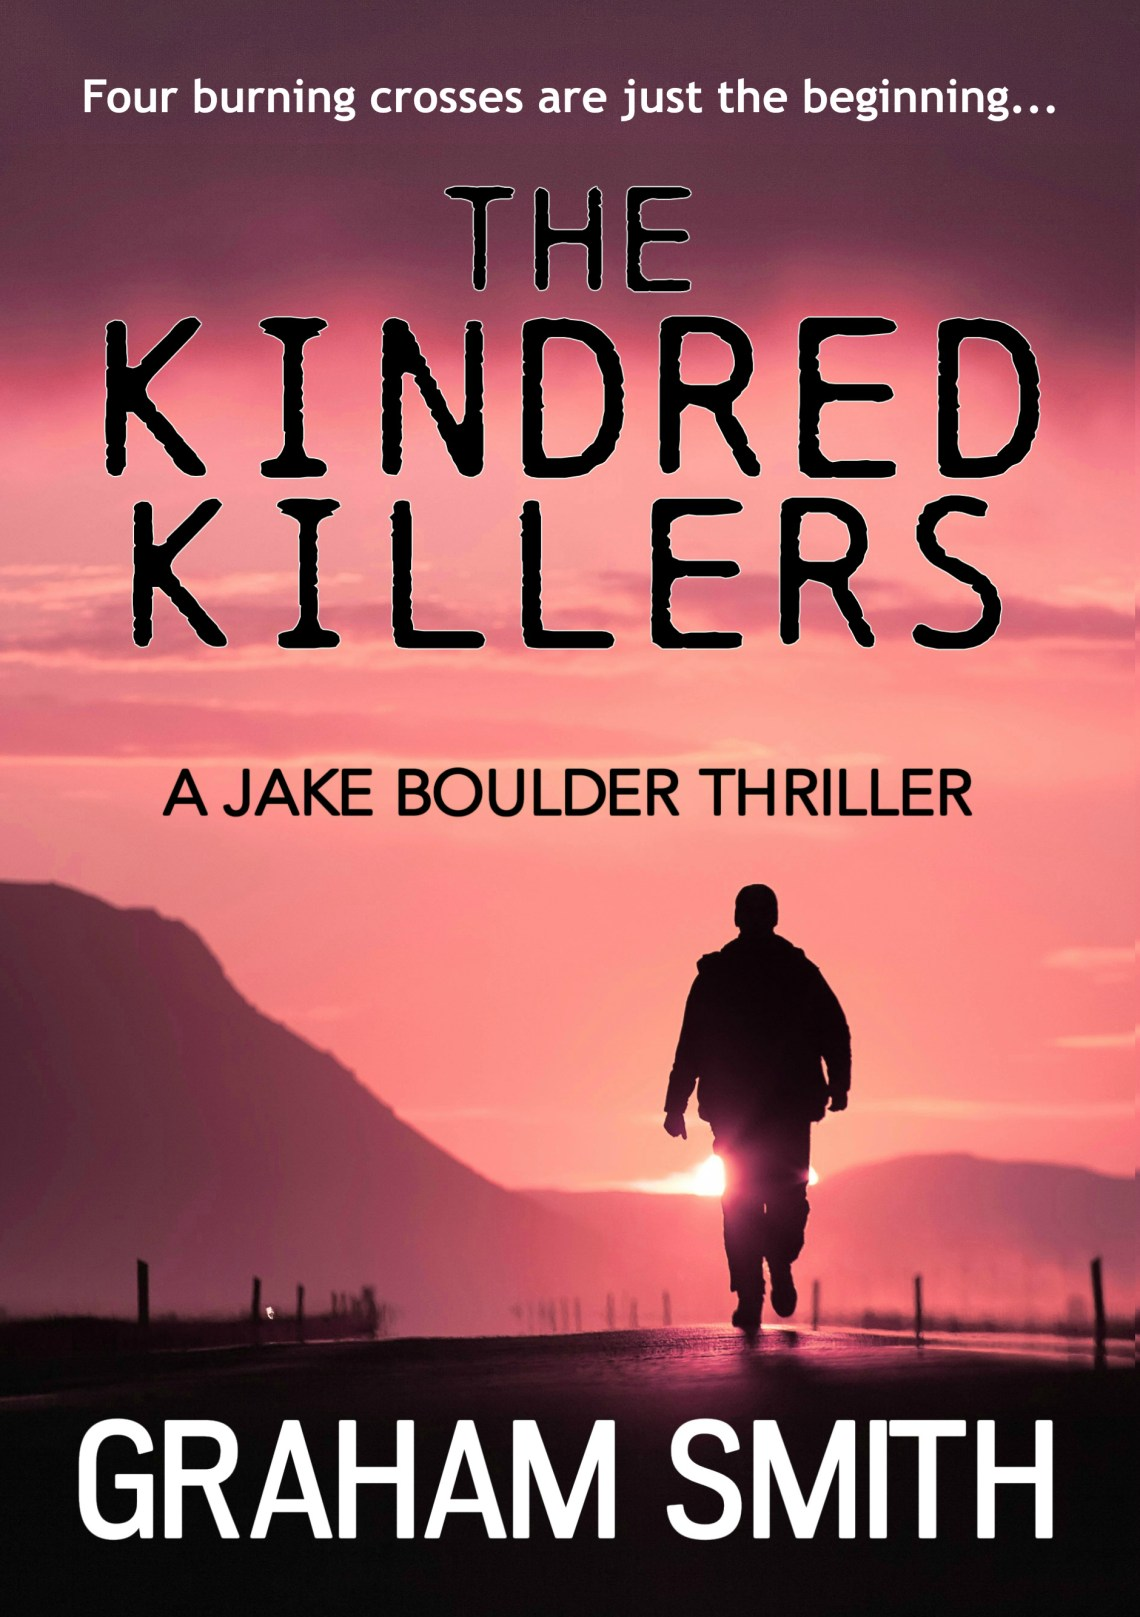 The Kindred Killers - Graham Smith - Book Cover